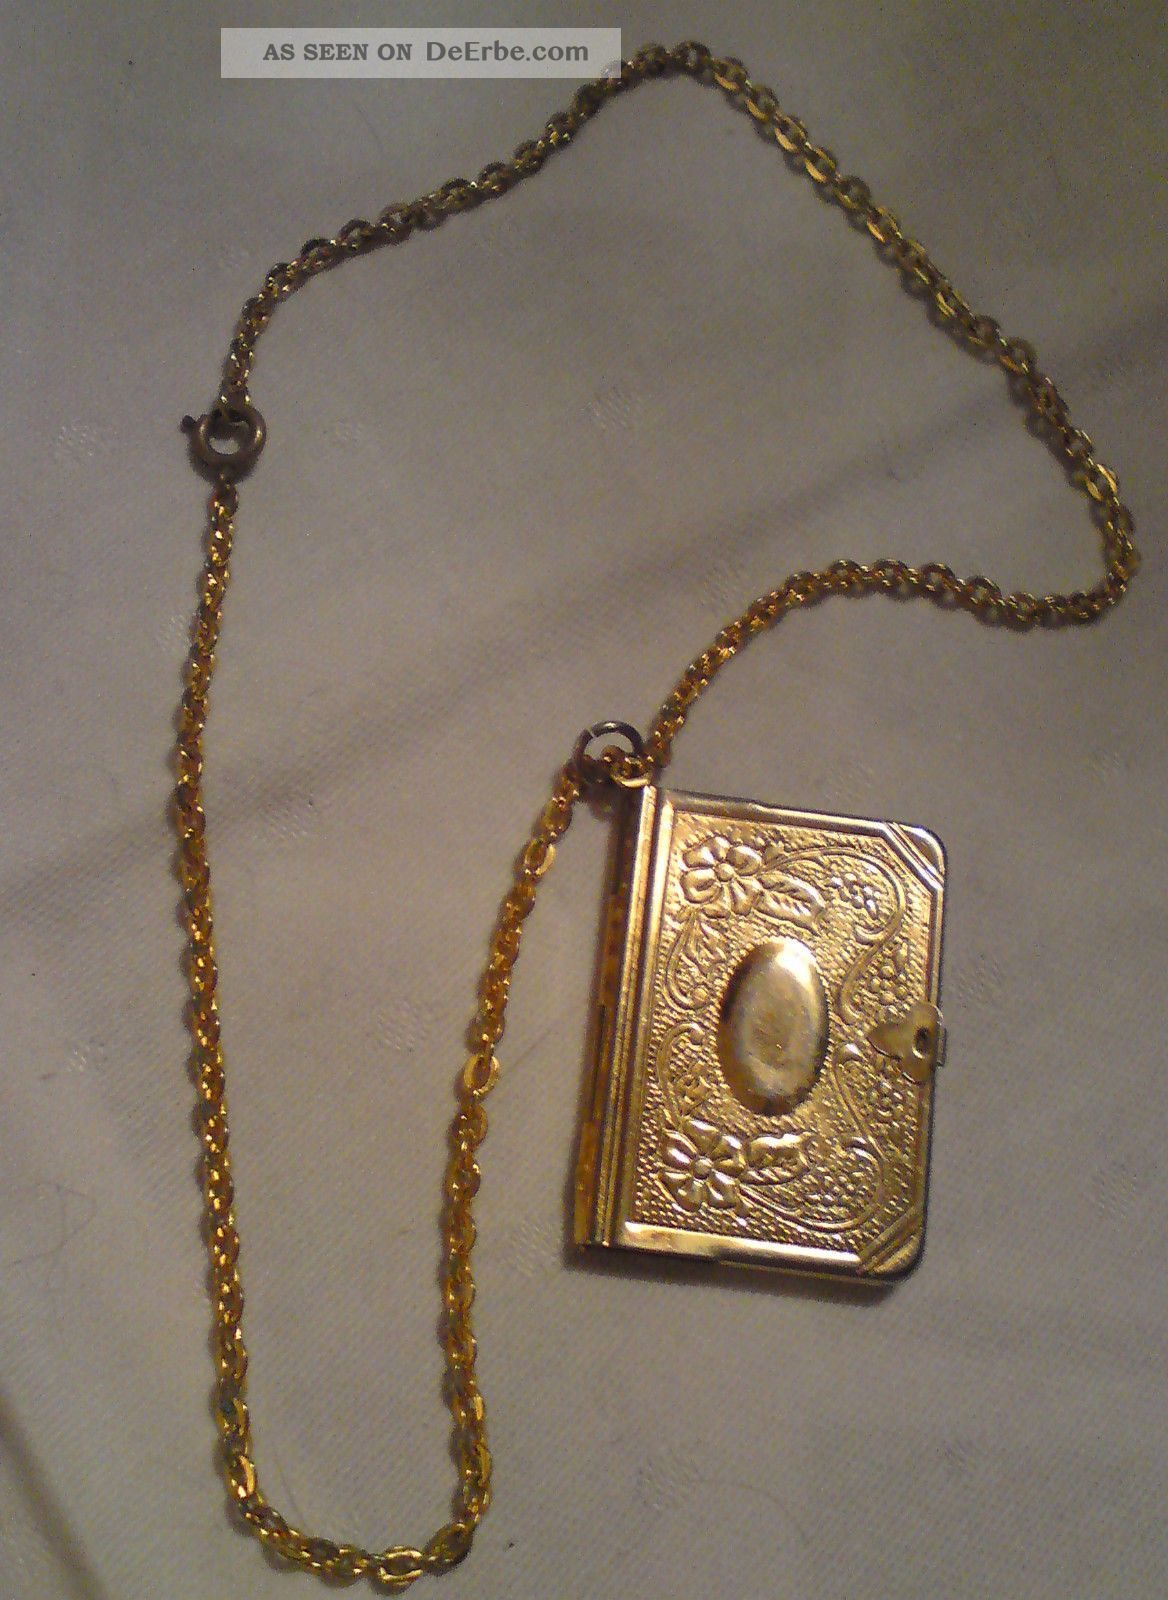 kette 40 cm mit amulett 4 cm x 2 8 cm in buchform zum aufklappen goldfarben. Black Bedroom Furniture Sets. Home Design Ideas